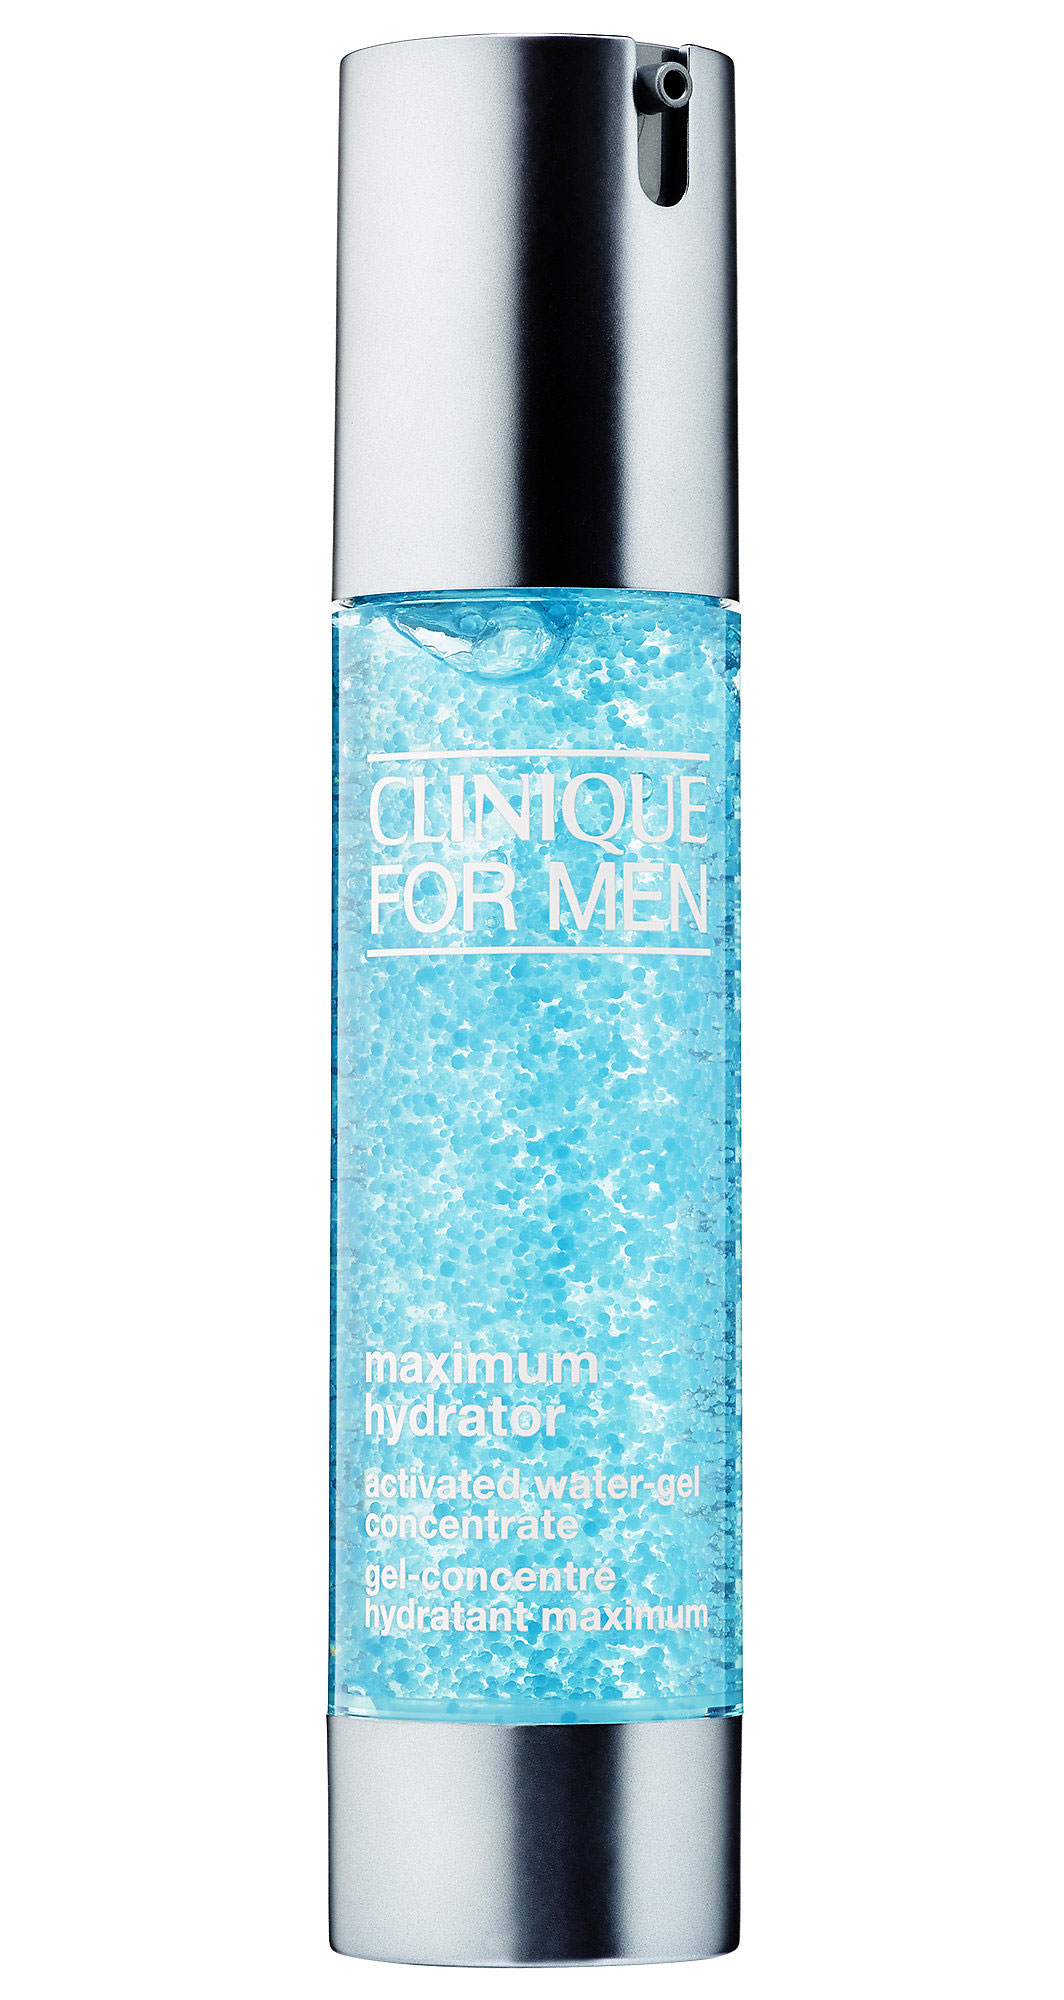 clinique-for-men-Maximum-Hydrator-Activated-Water-Gel-Concentrate